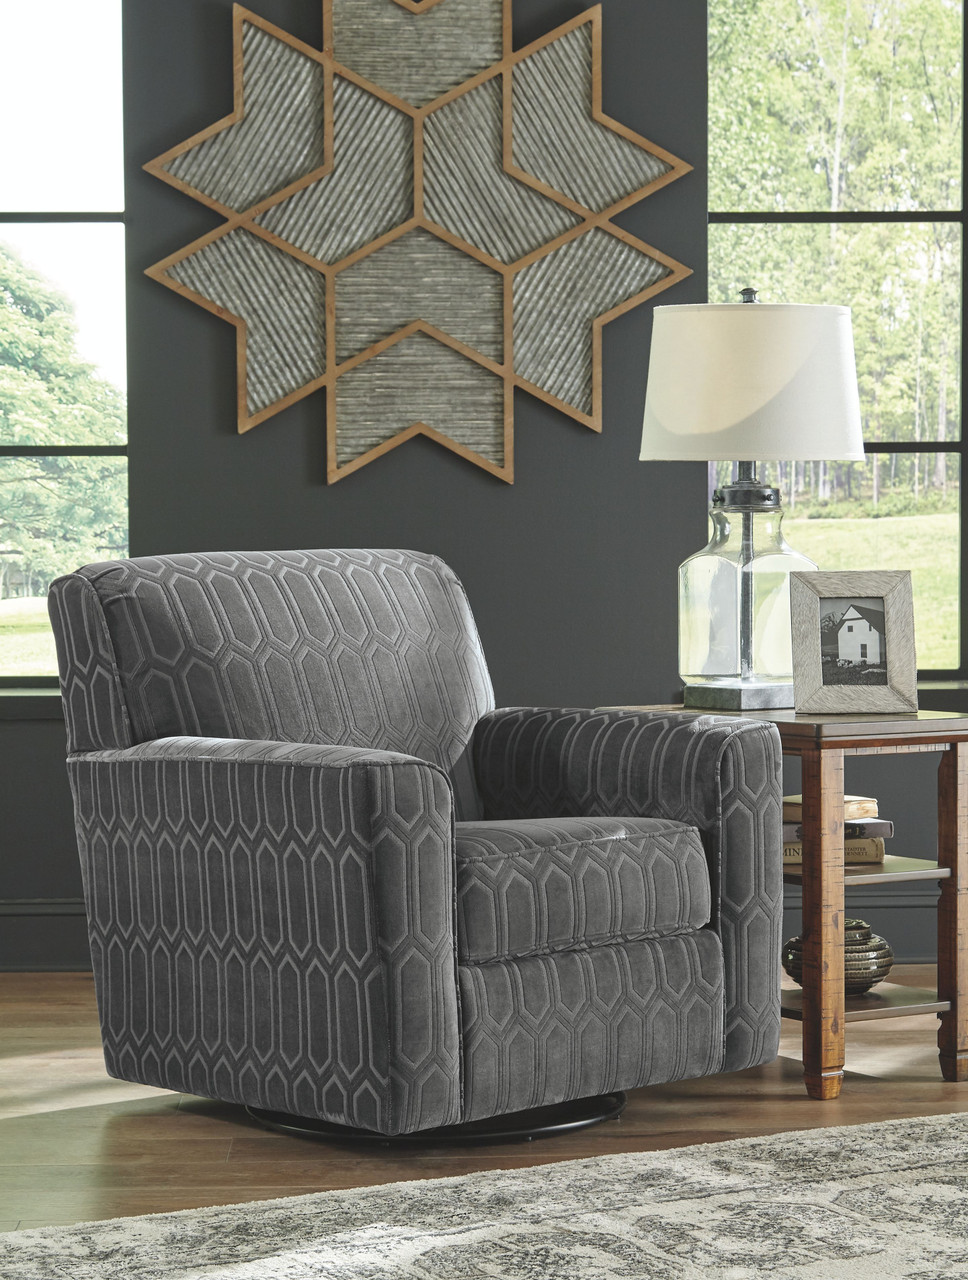 Zarina Graphite Swivel Accent Chair On Sale At American Furniture Of Slidell Serving La